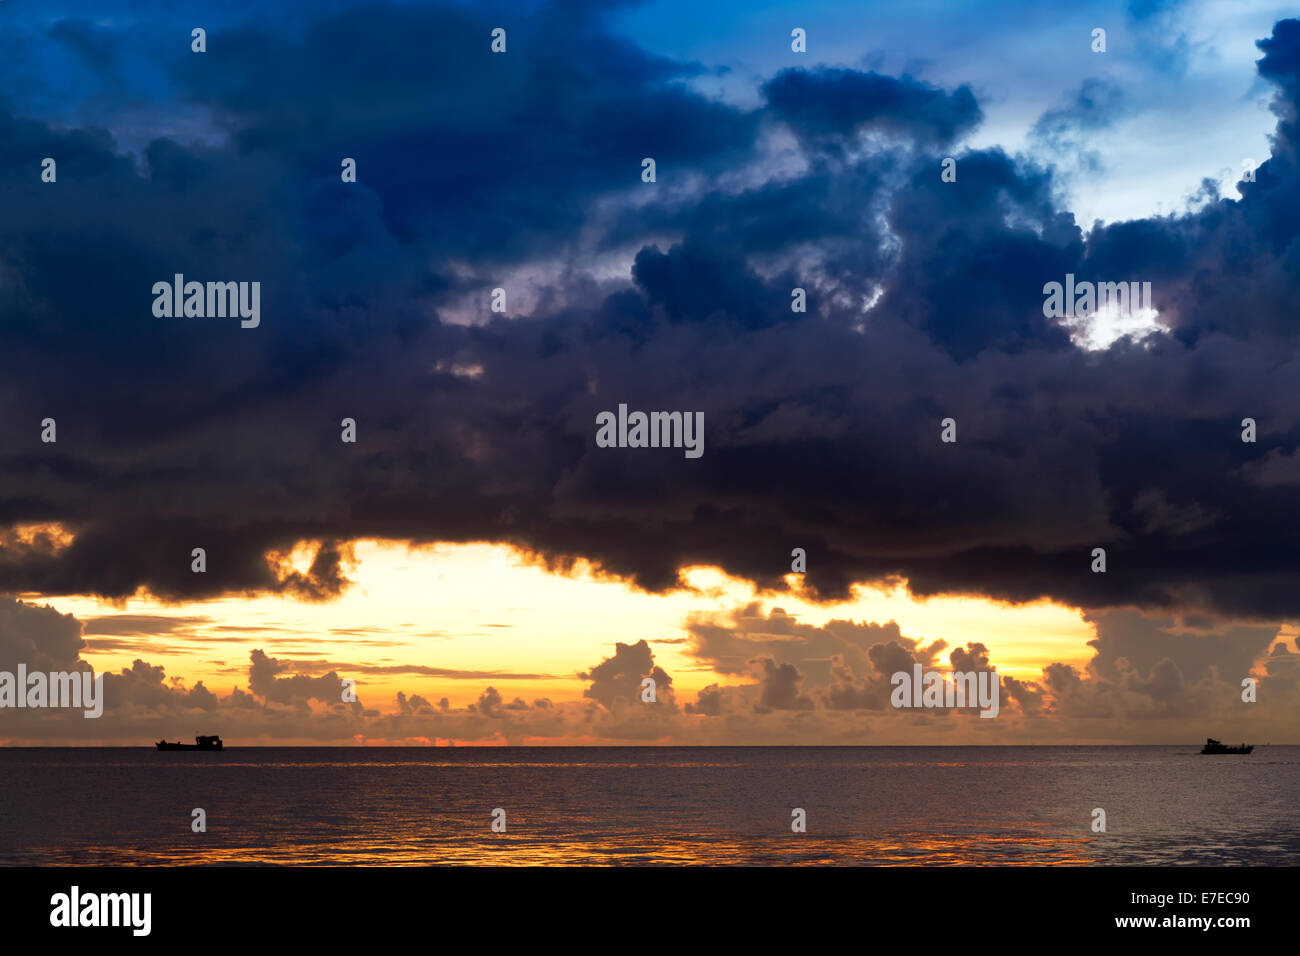 Sunset at South China Sea with threatening sky and ships, Phu Quoc, Vietnam Stock Photo